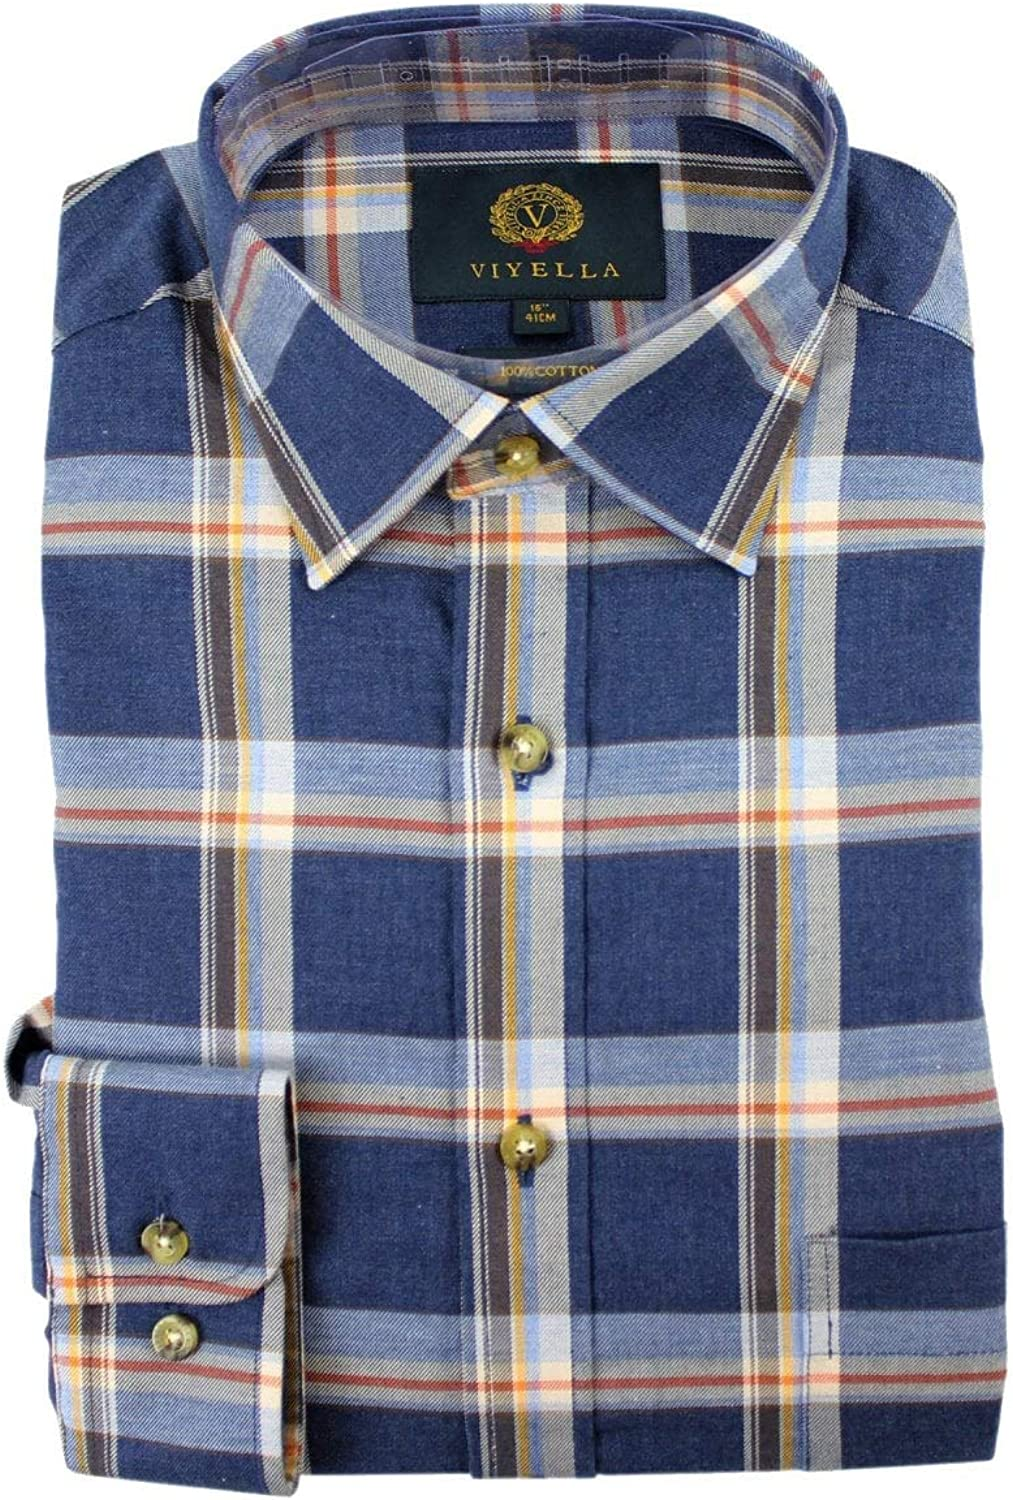 Viyella Plaid Cotton Long Sleeve Shirt Navy Marl 15 38cm Navy Marl Amazon Co Uk Clothing